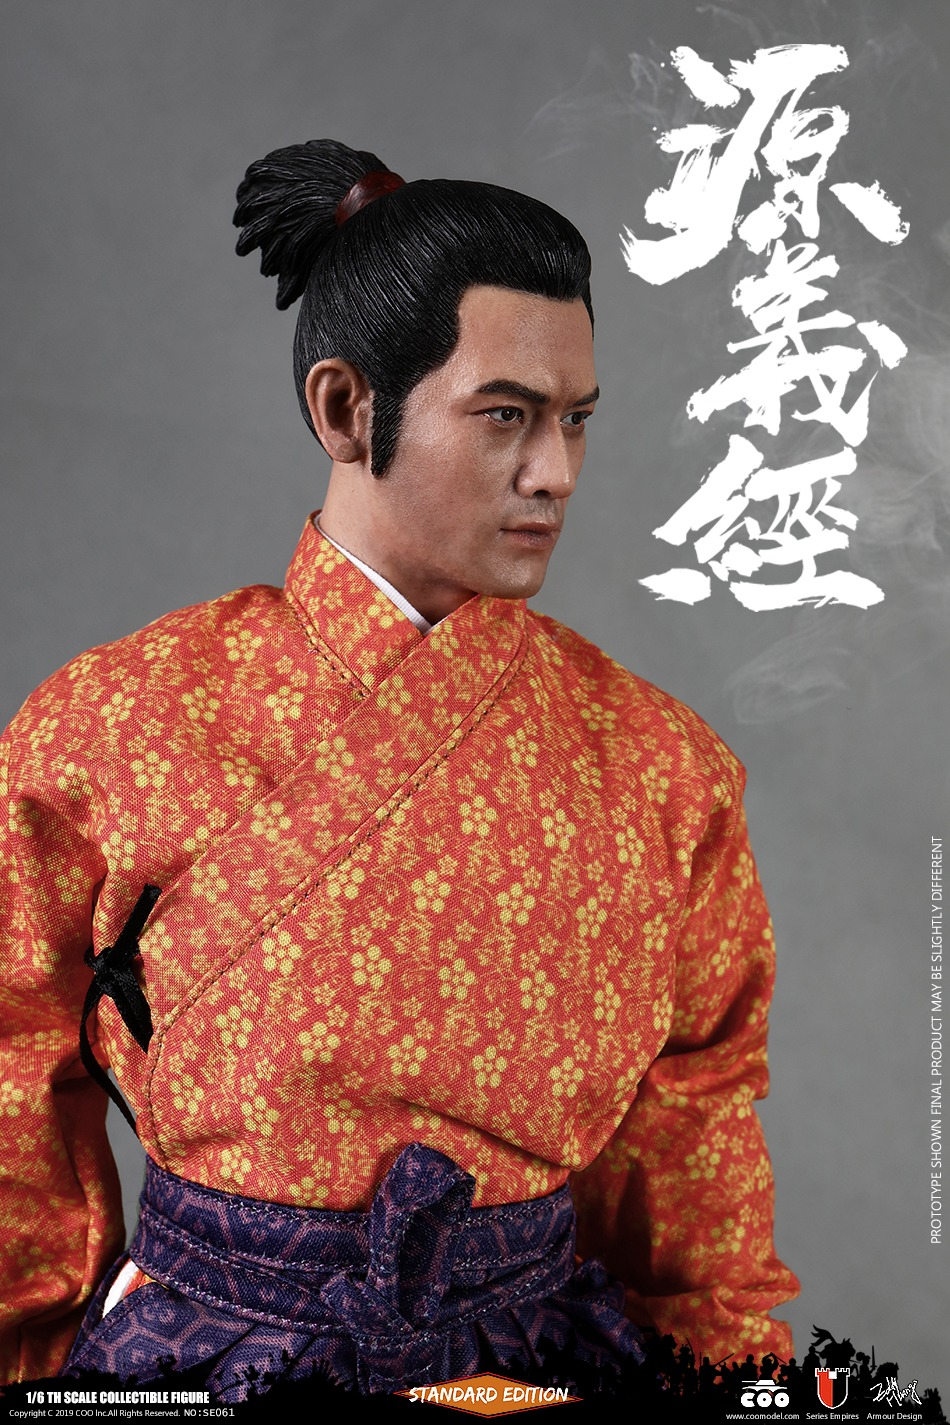 coomodel - NEW PRODUCT: COOMODEL: 1/6 Empire Series Die Casting-Zana Wang Yuan Yi Jing Standard & Collector's Edition 19020310